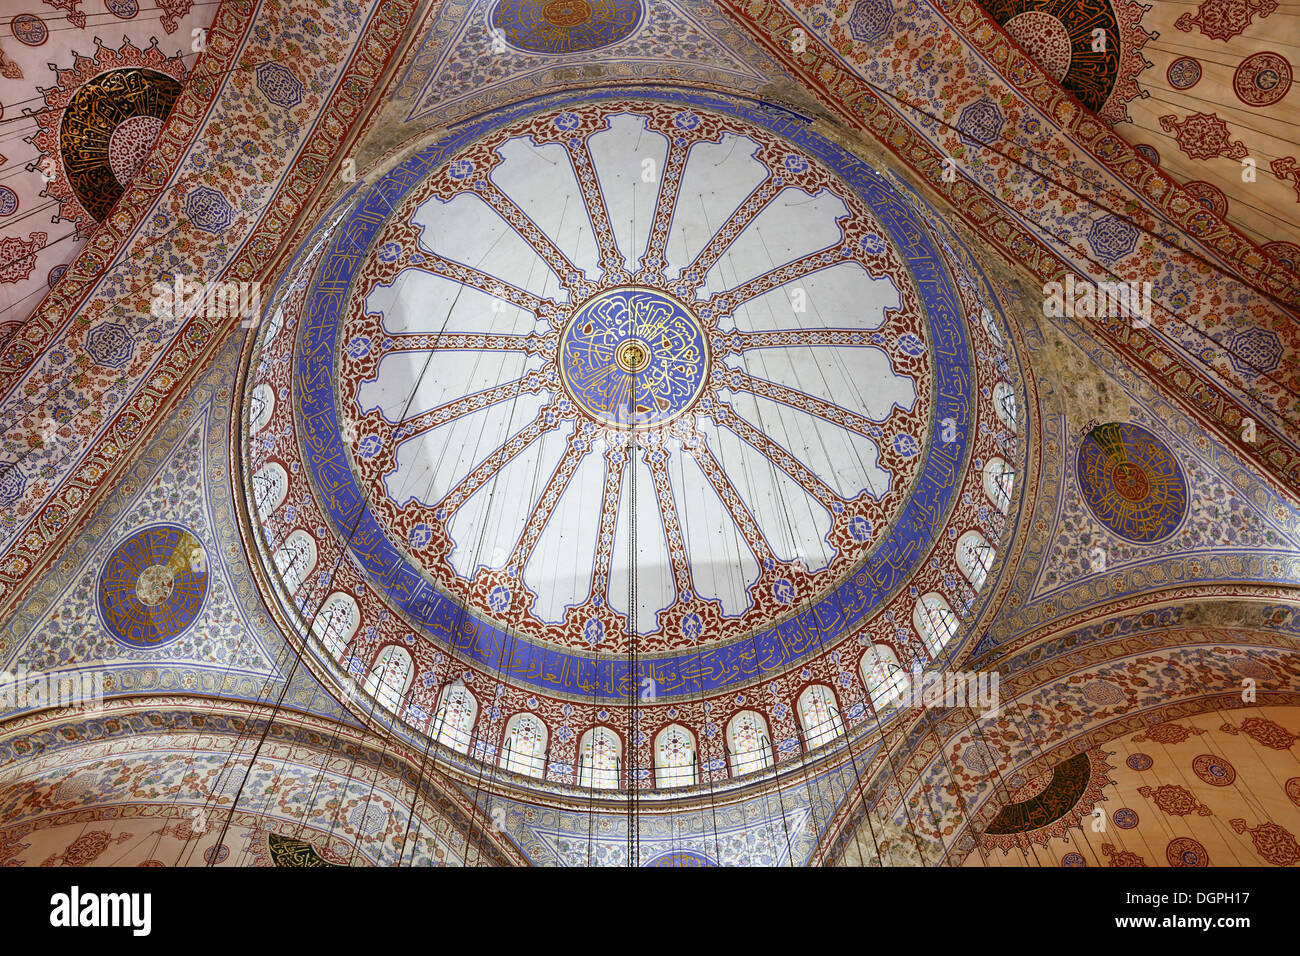 Interior view, main dome, Blue Mosque, Sultan Ahmed Mosque or Sultanahmet Camii, Istanbul, European side, Istanbul Stock Photo